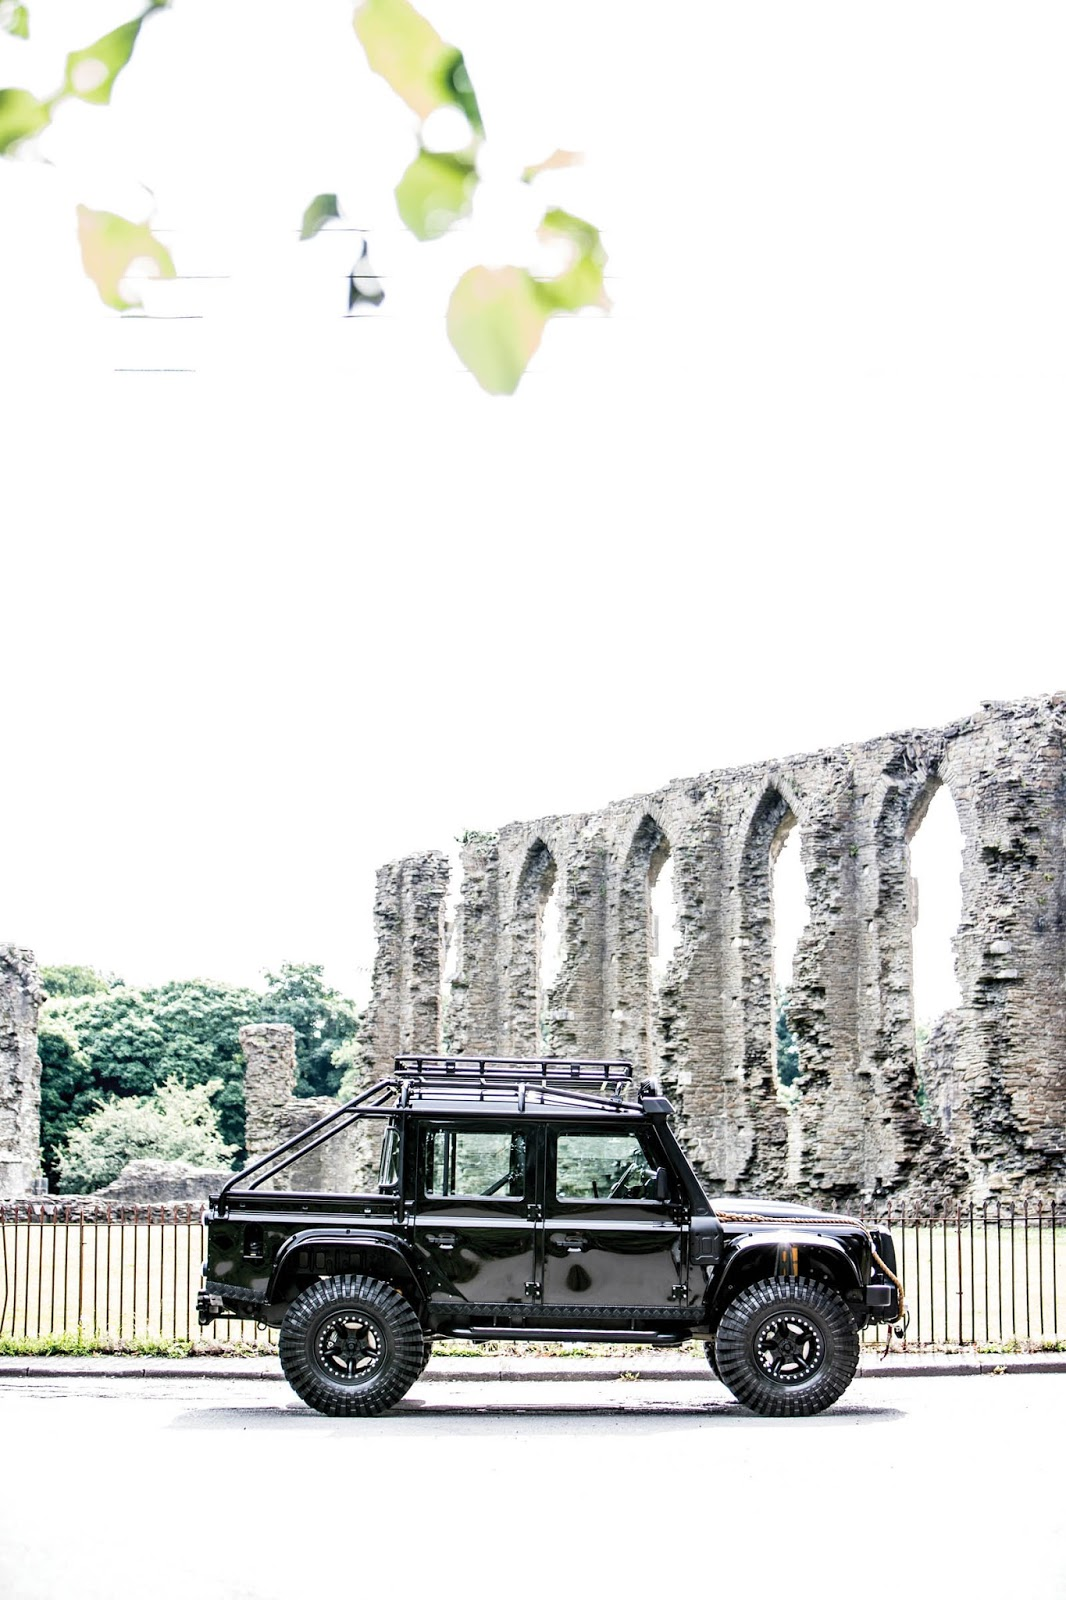 Land Rover Defender SVX Concept Spectre James Bond (4)